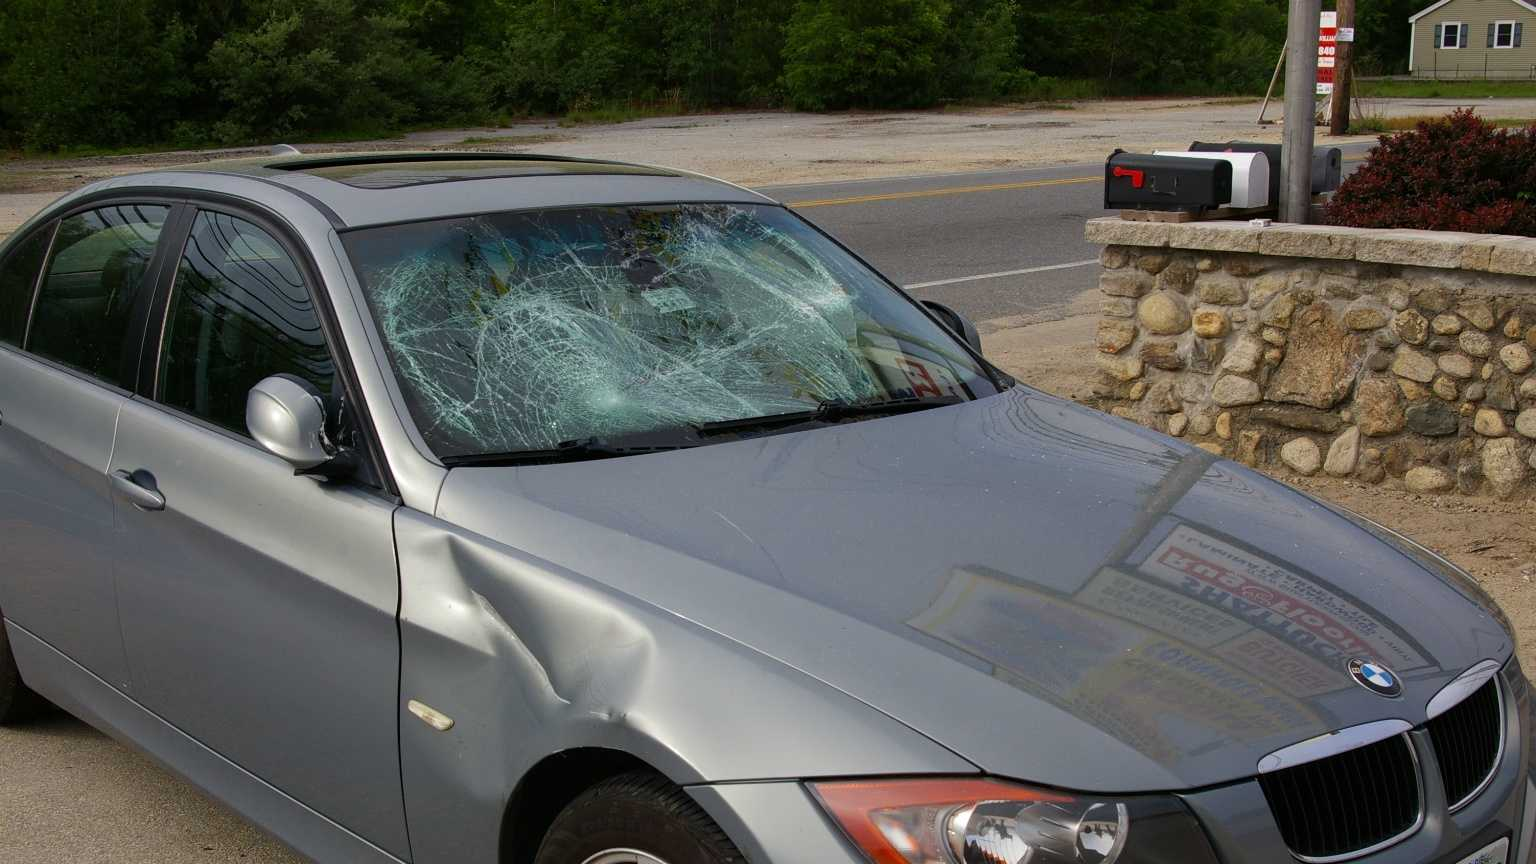 A bicyclist is recovering after being hit by a car Saturday in Hudson.